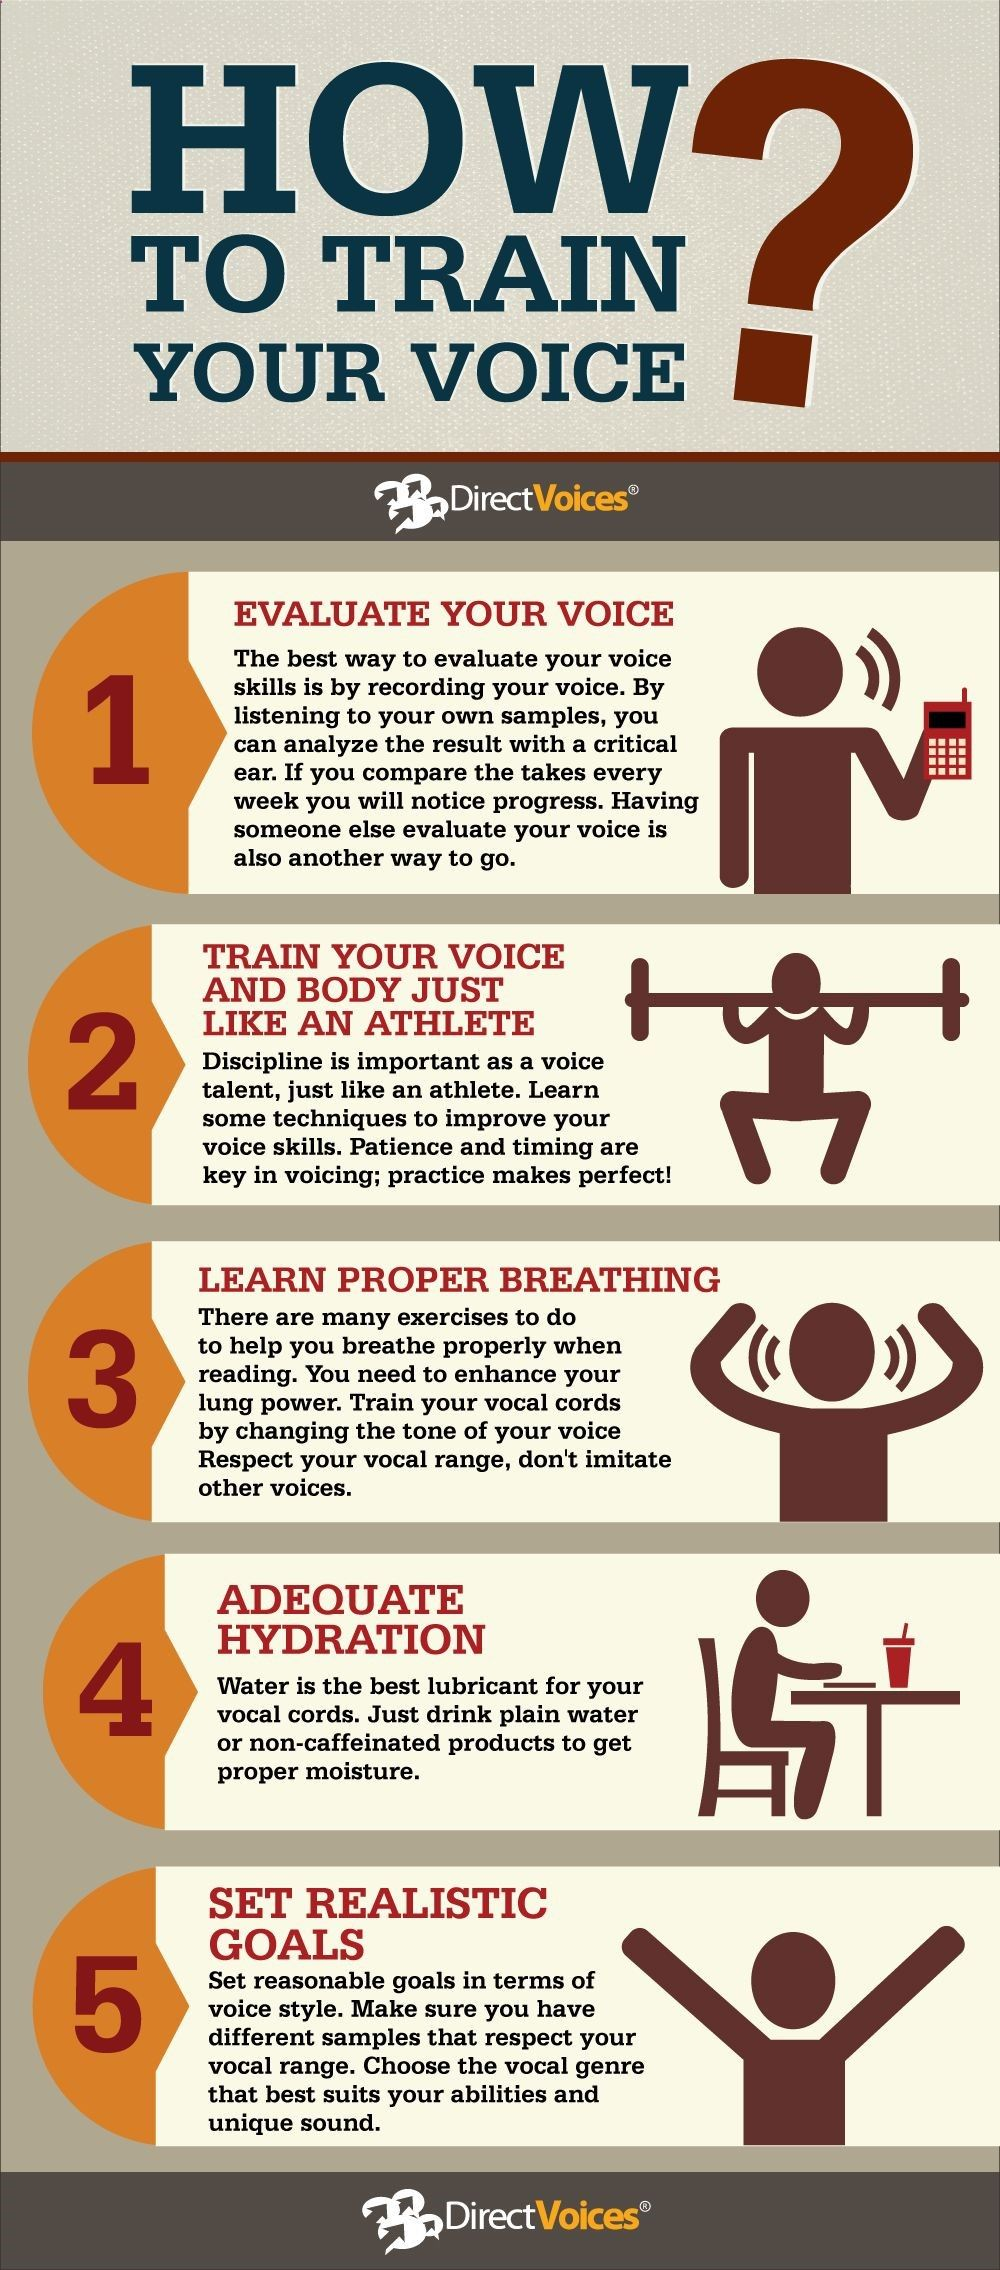 5 top tips for training your voice as an actor or singer